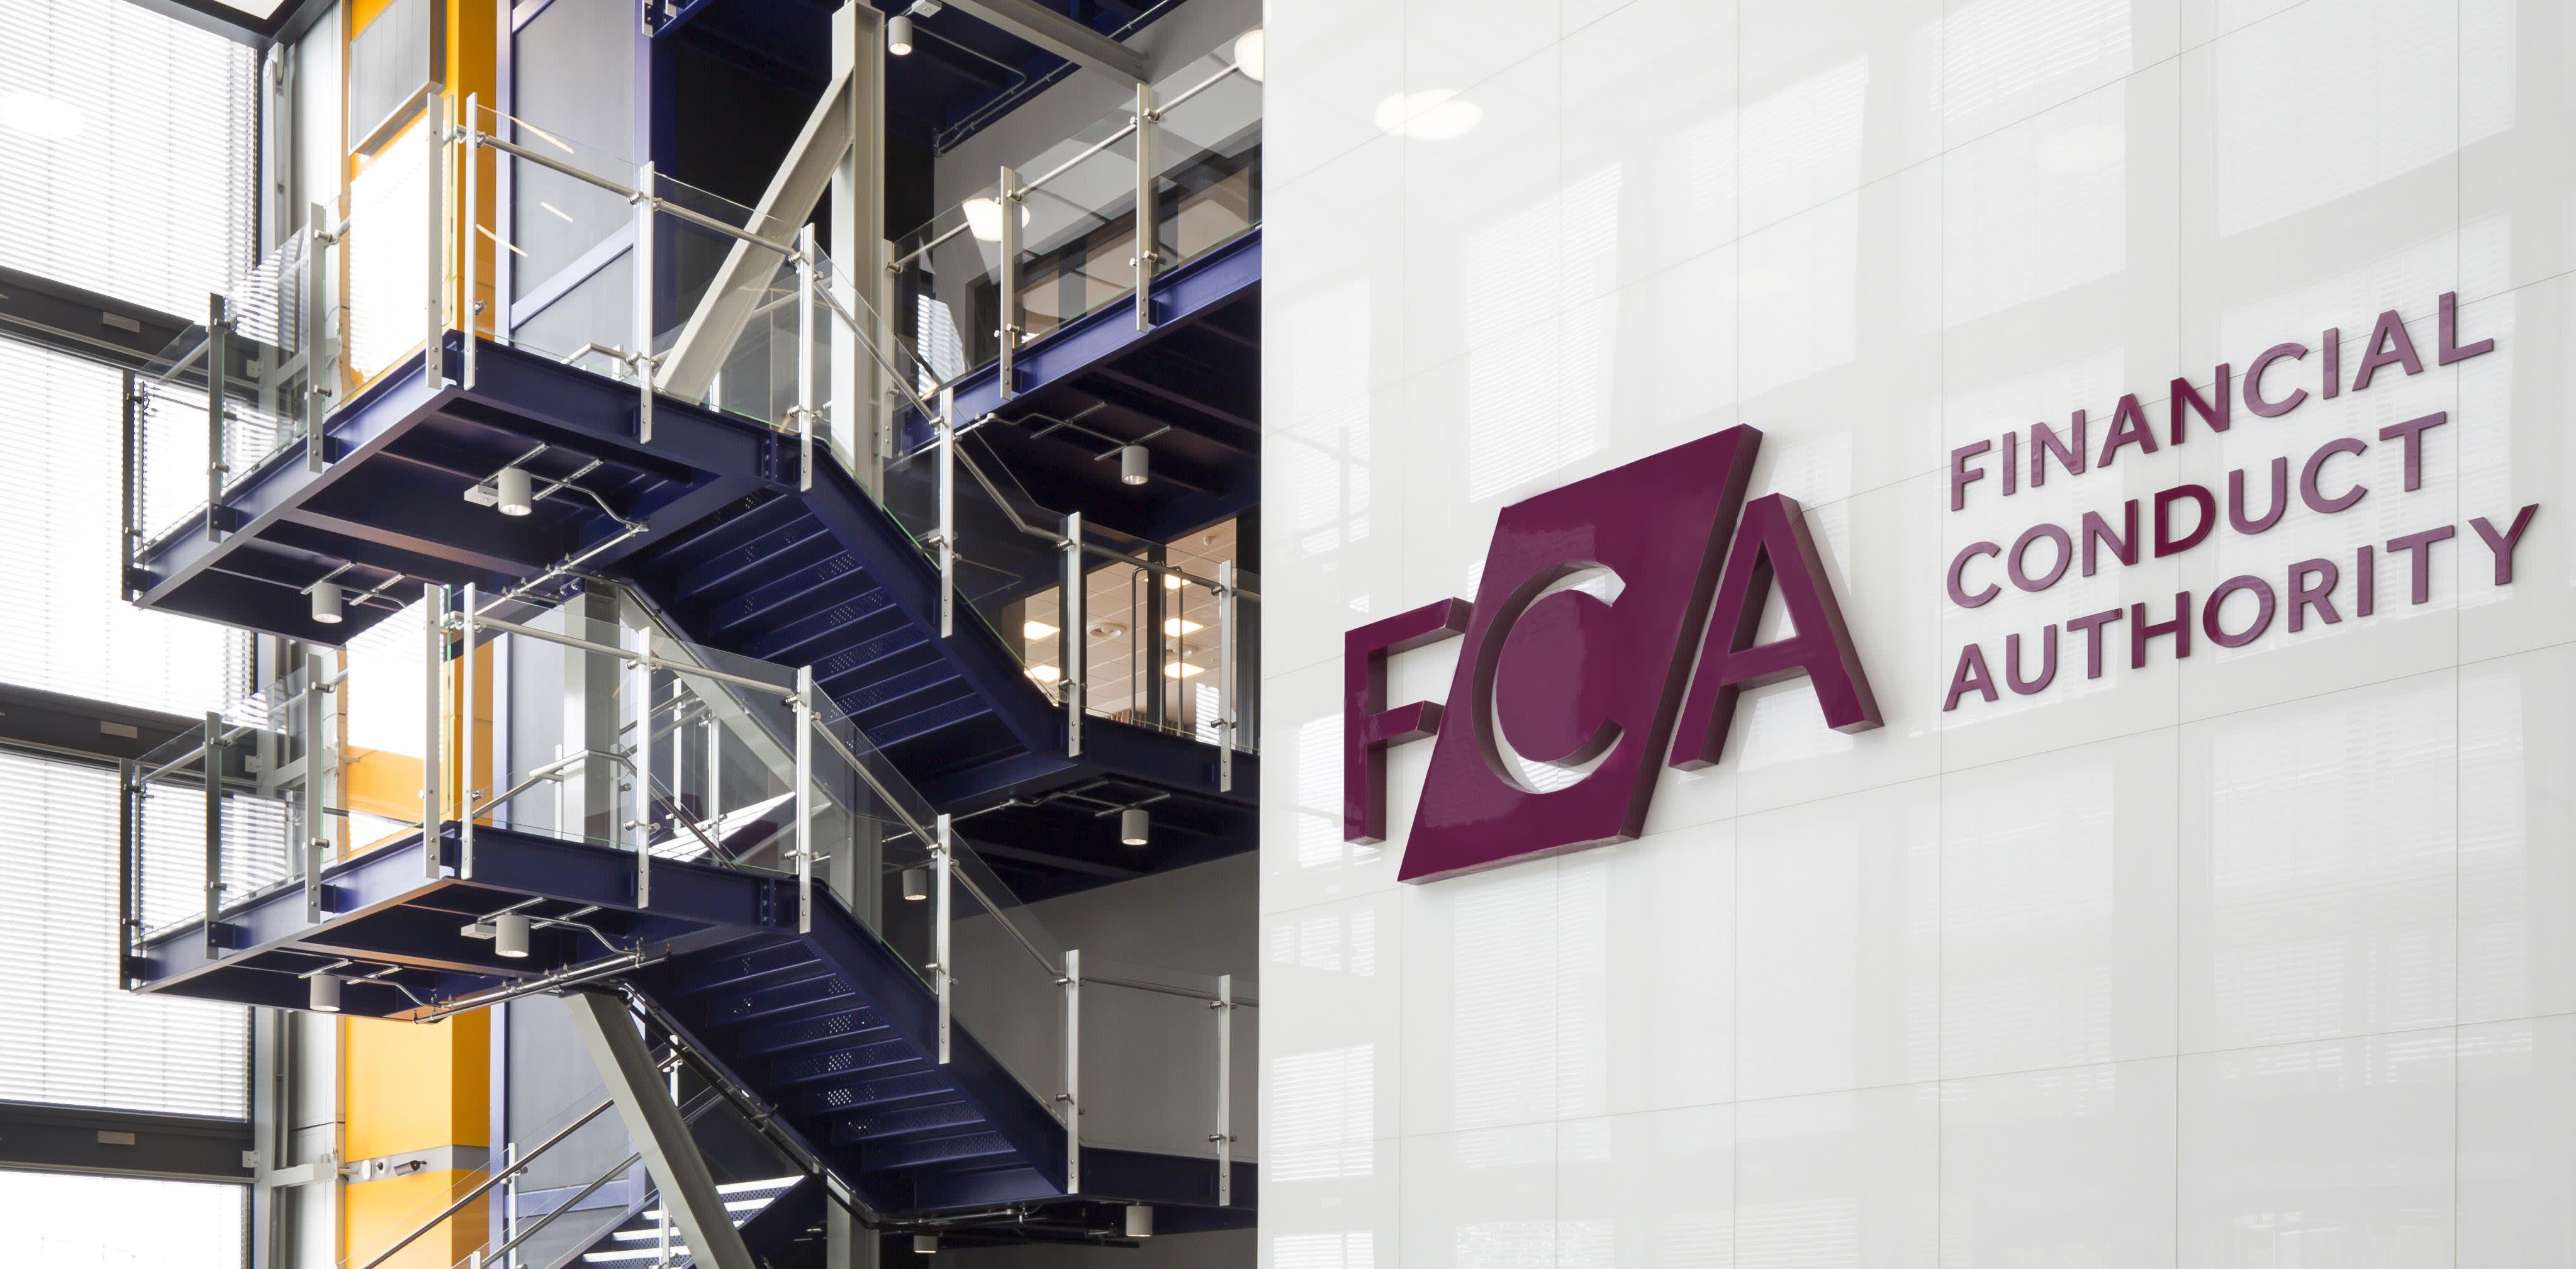 No whistleblowers came forward on LCF and Blackmore, says FCA